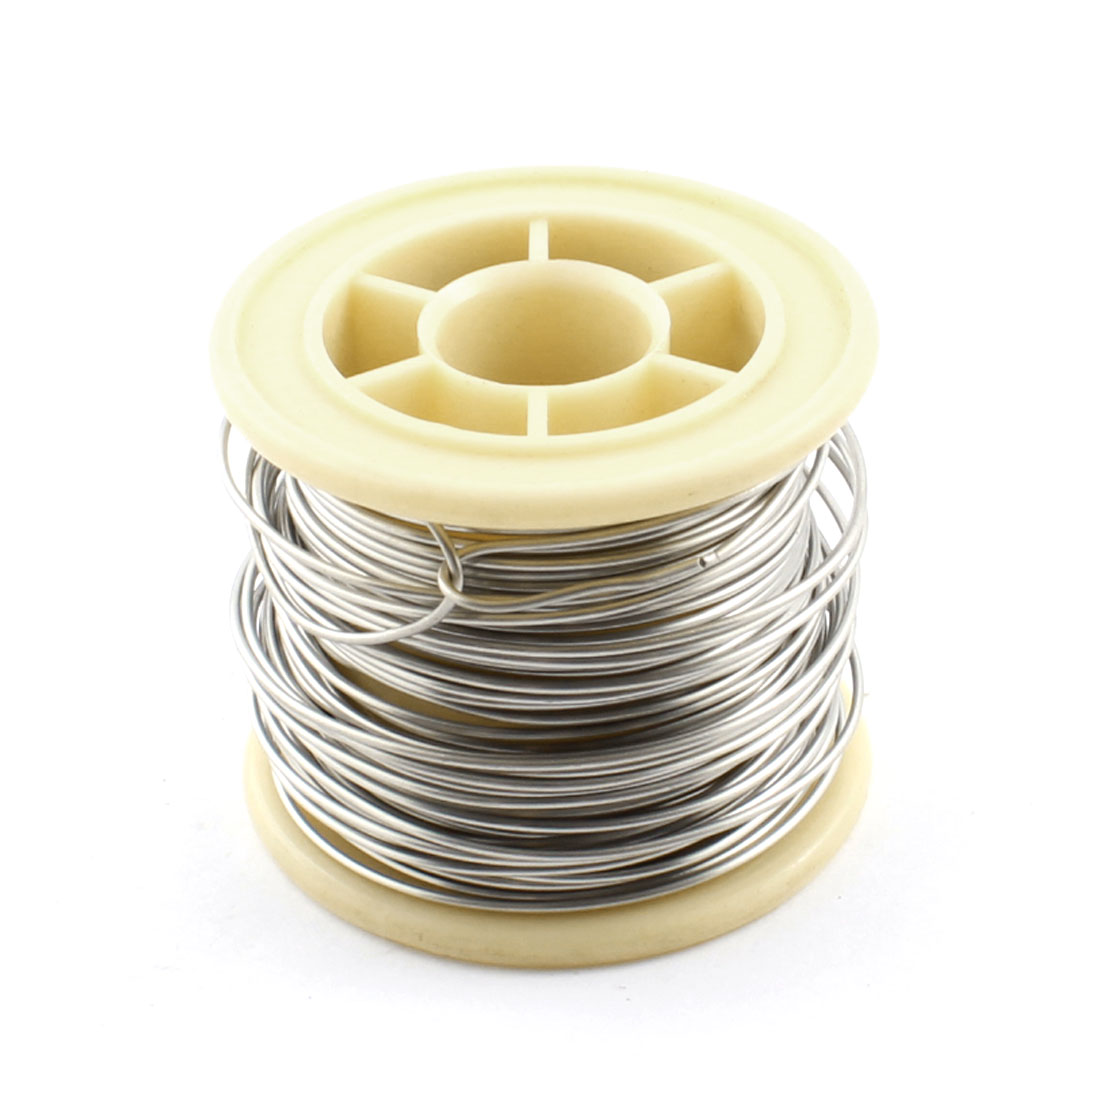 7.5Meter 25ft 1mm Diameter AWG18 1.388 Ohm/M Nichrome Resistance Heating Coils Resistor Wire Cable